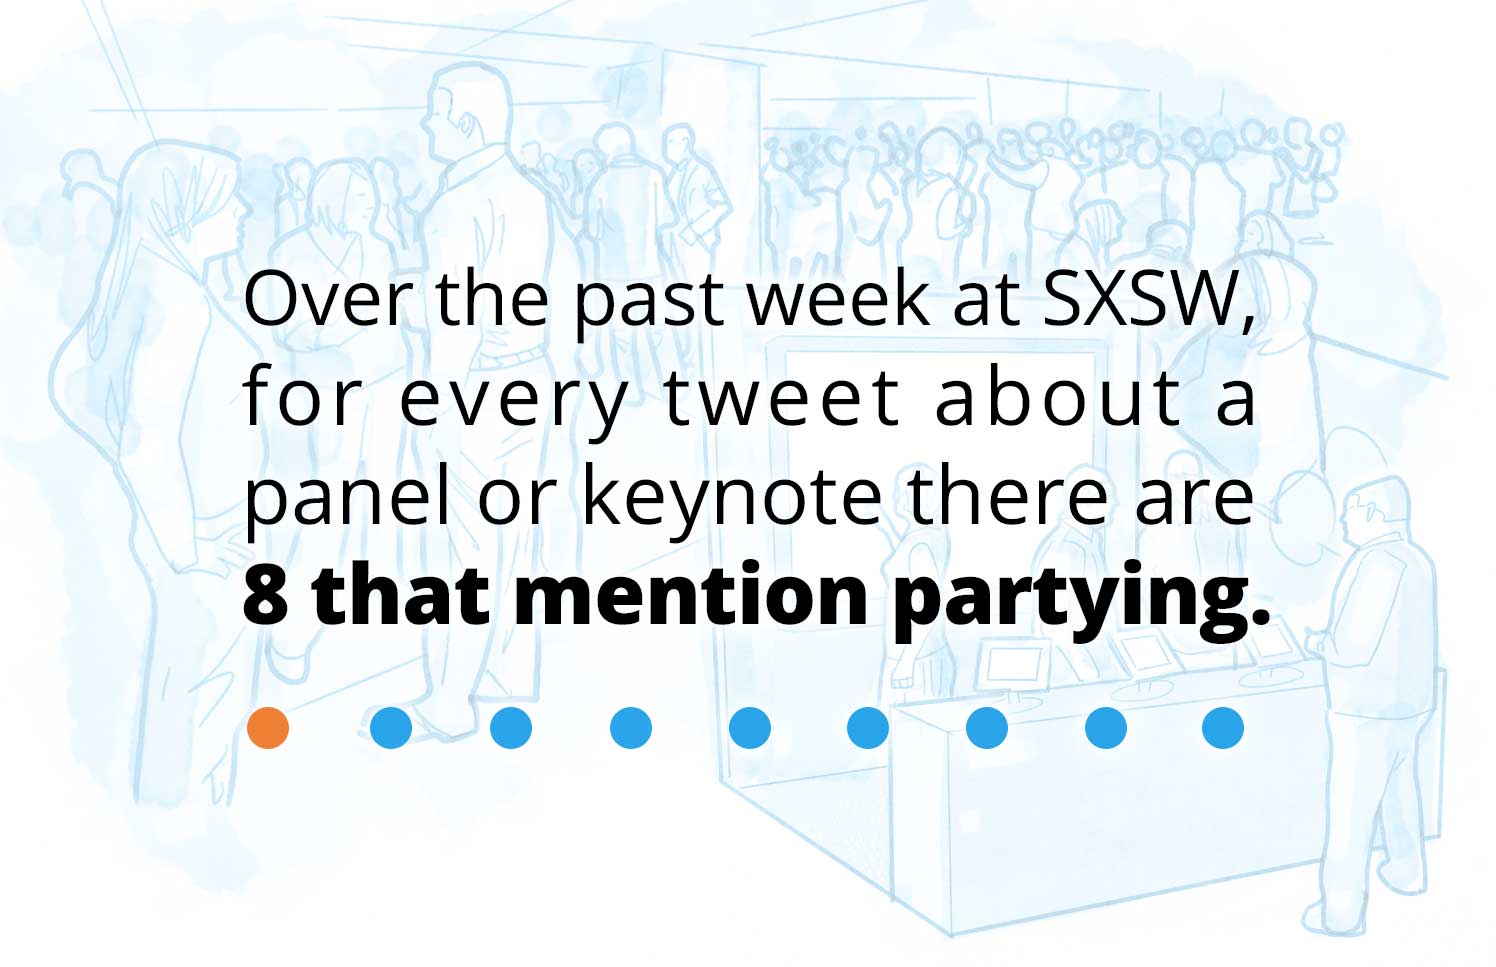 Graphic with text overlay: Over the past week at SXSW, for every tweet about a panel of keynote there are 8 that mention partying.